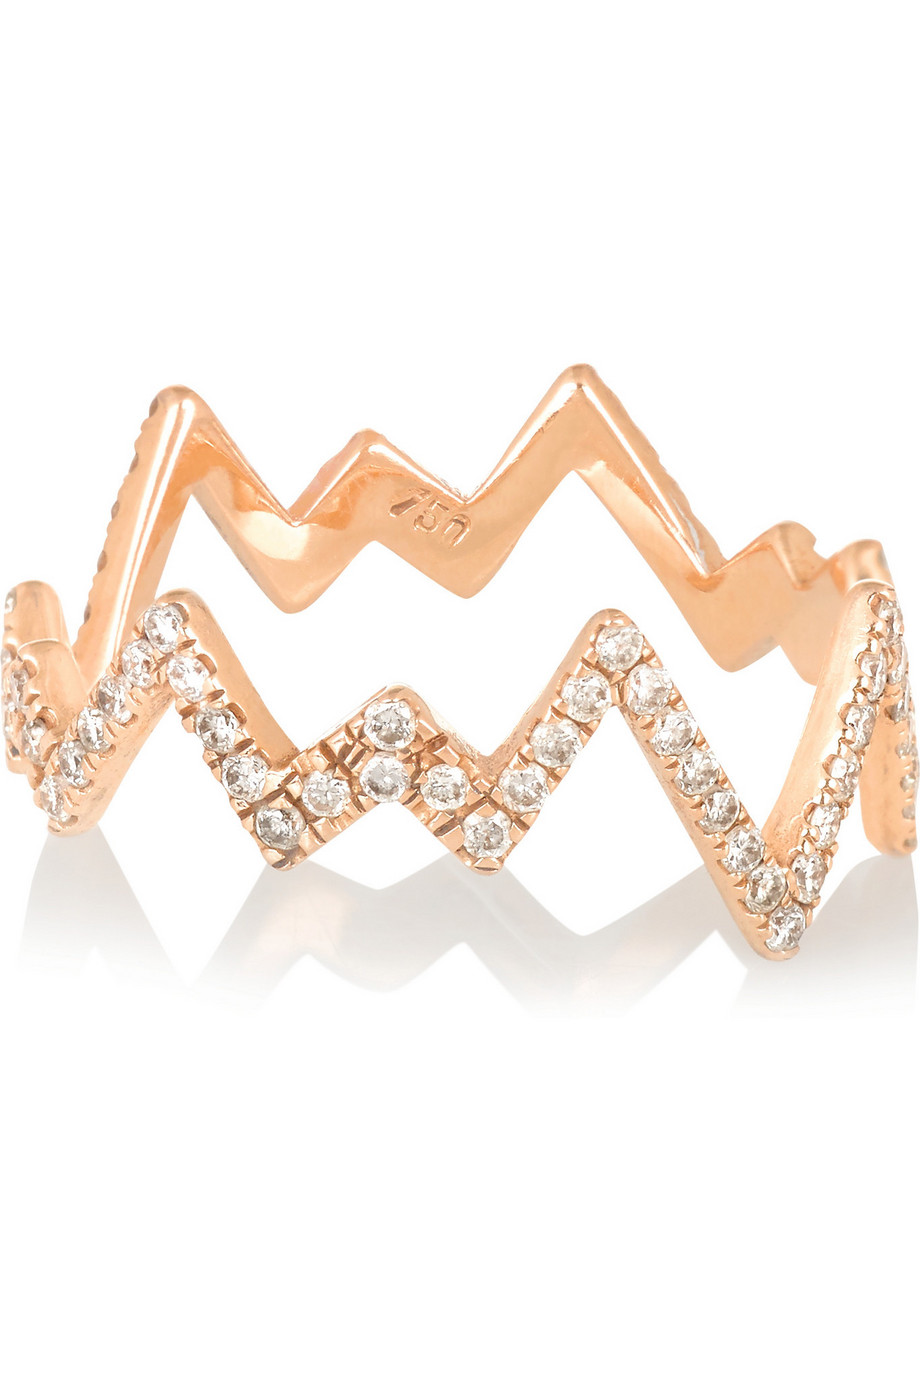 Diane Kordas Pop Art 18-Karat Rose Gold Diamond Ring, Women's, Size: 6